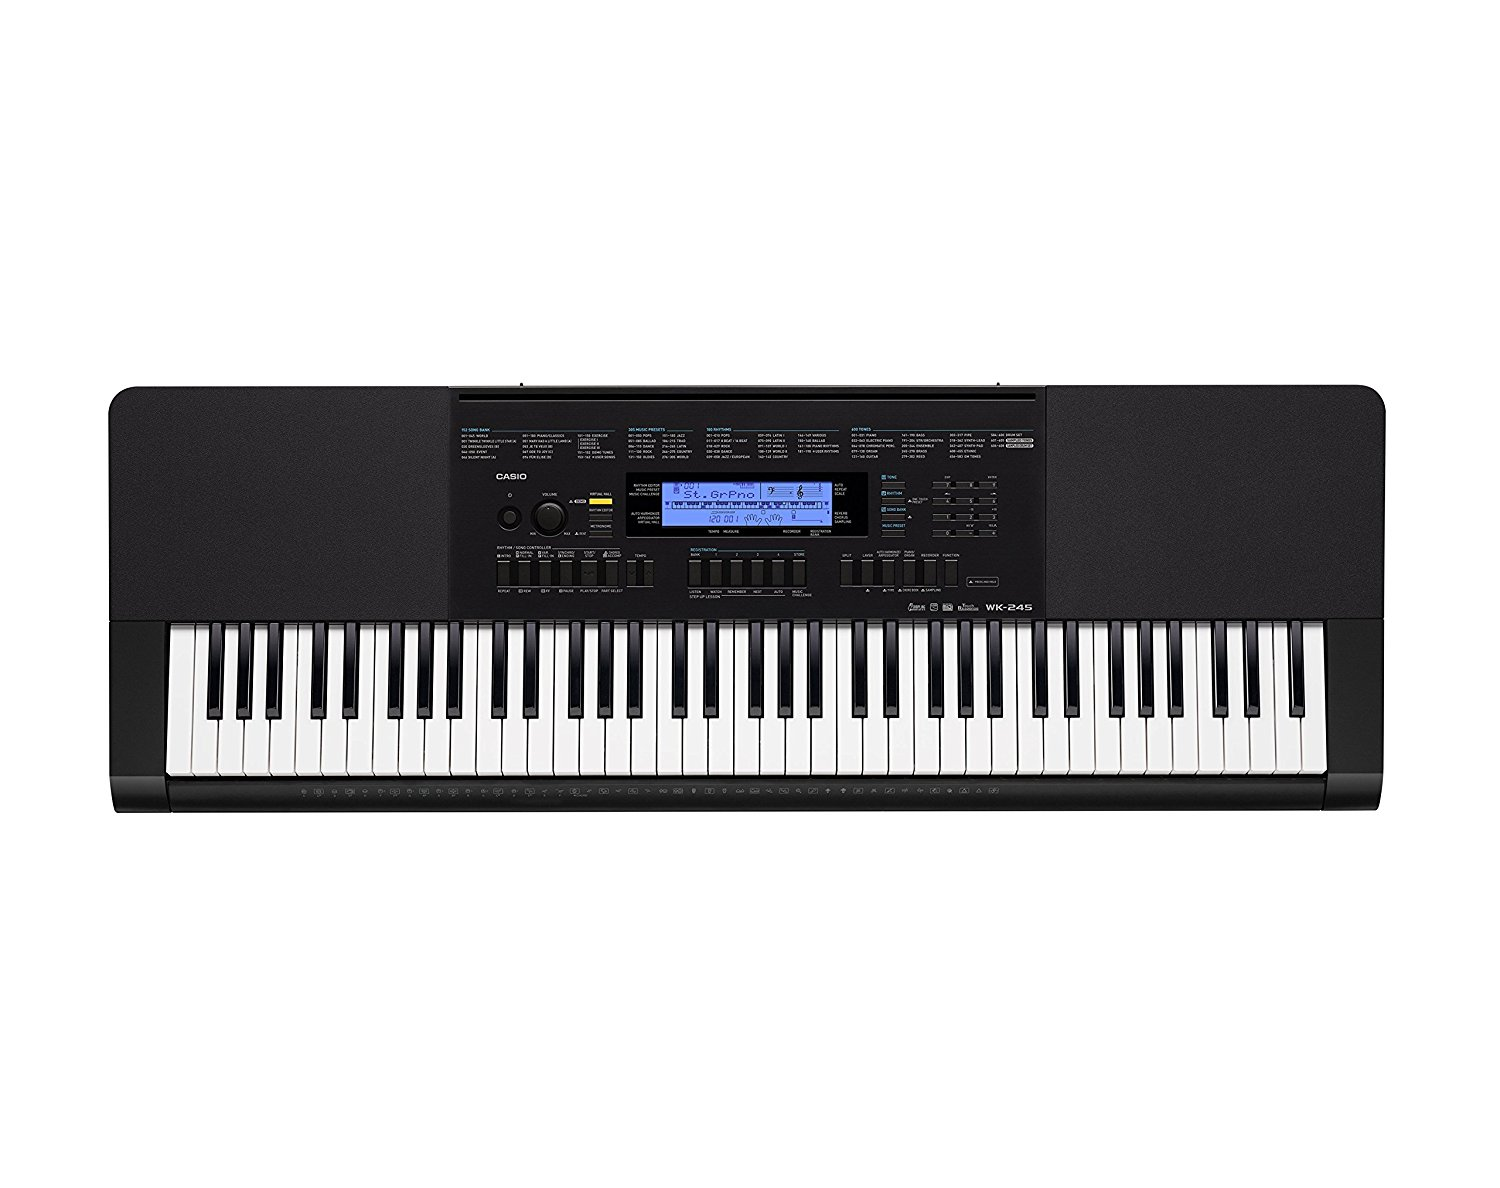 76 Full Size Keys  32 note Poly